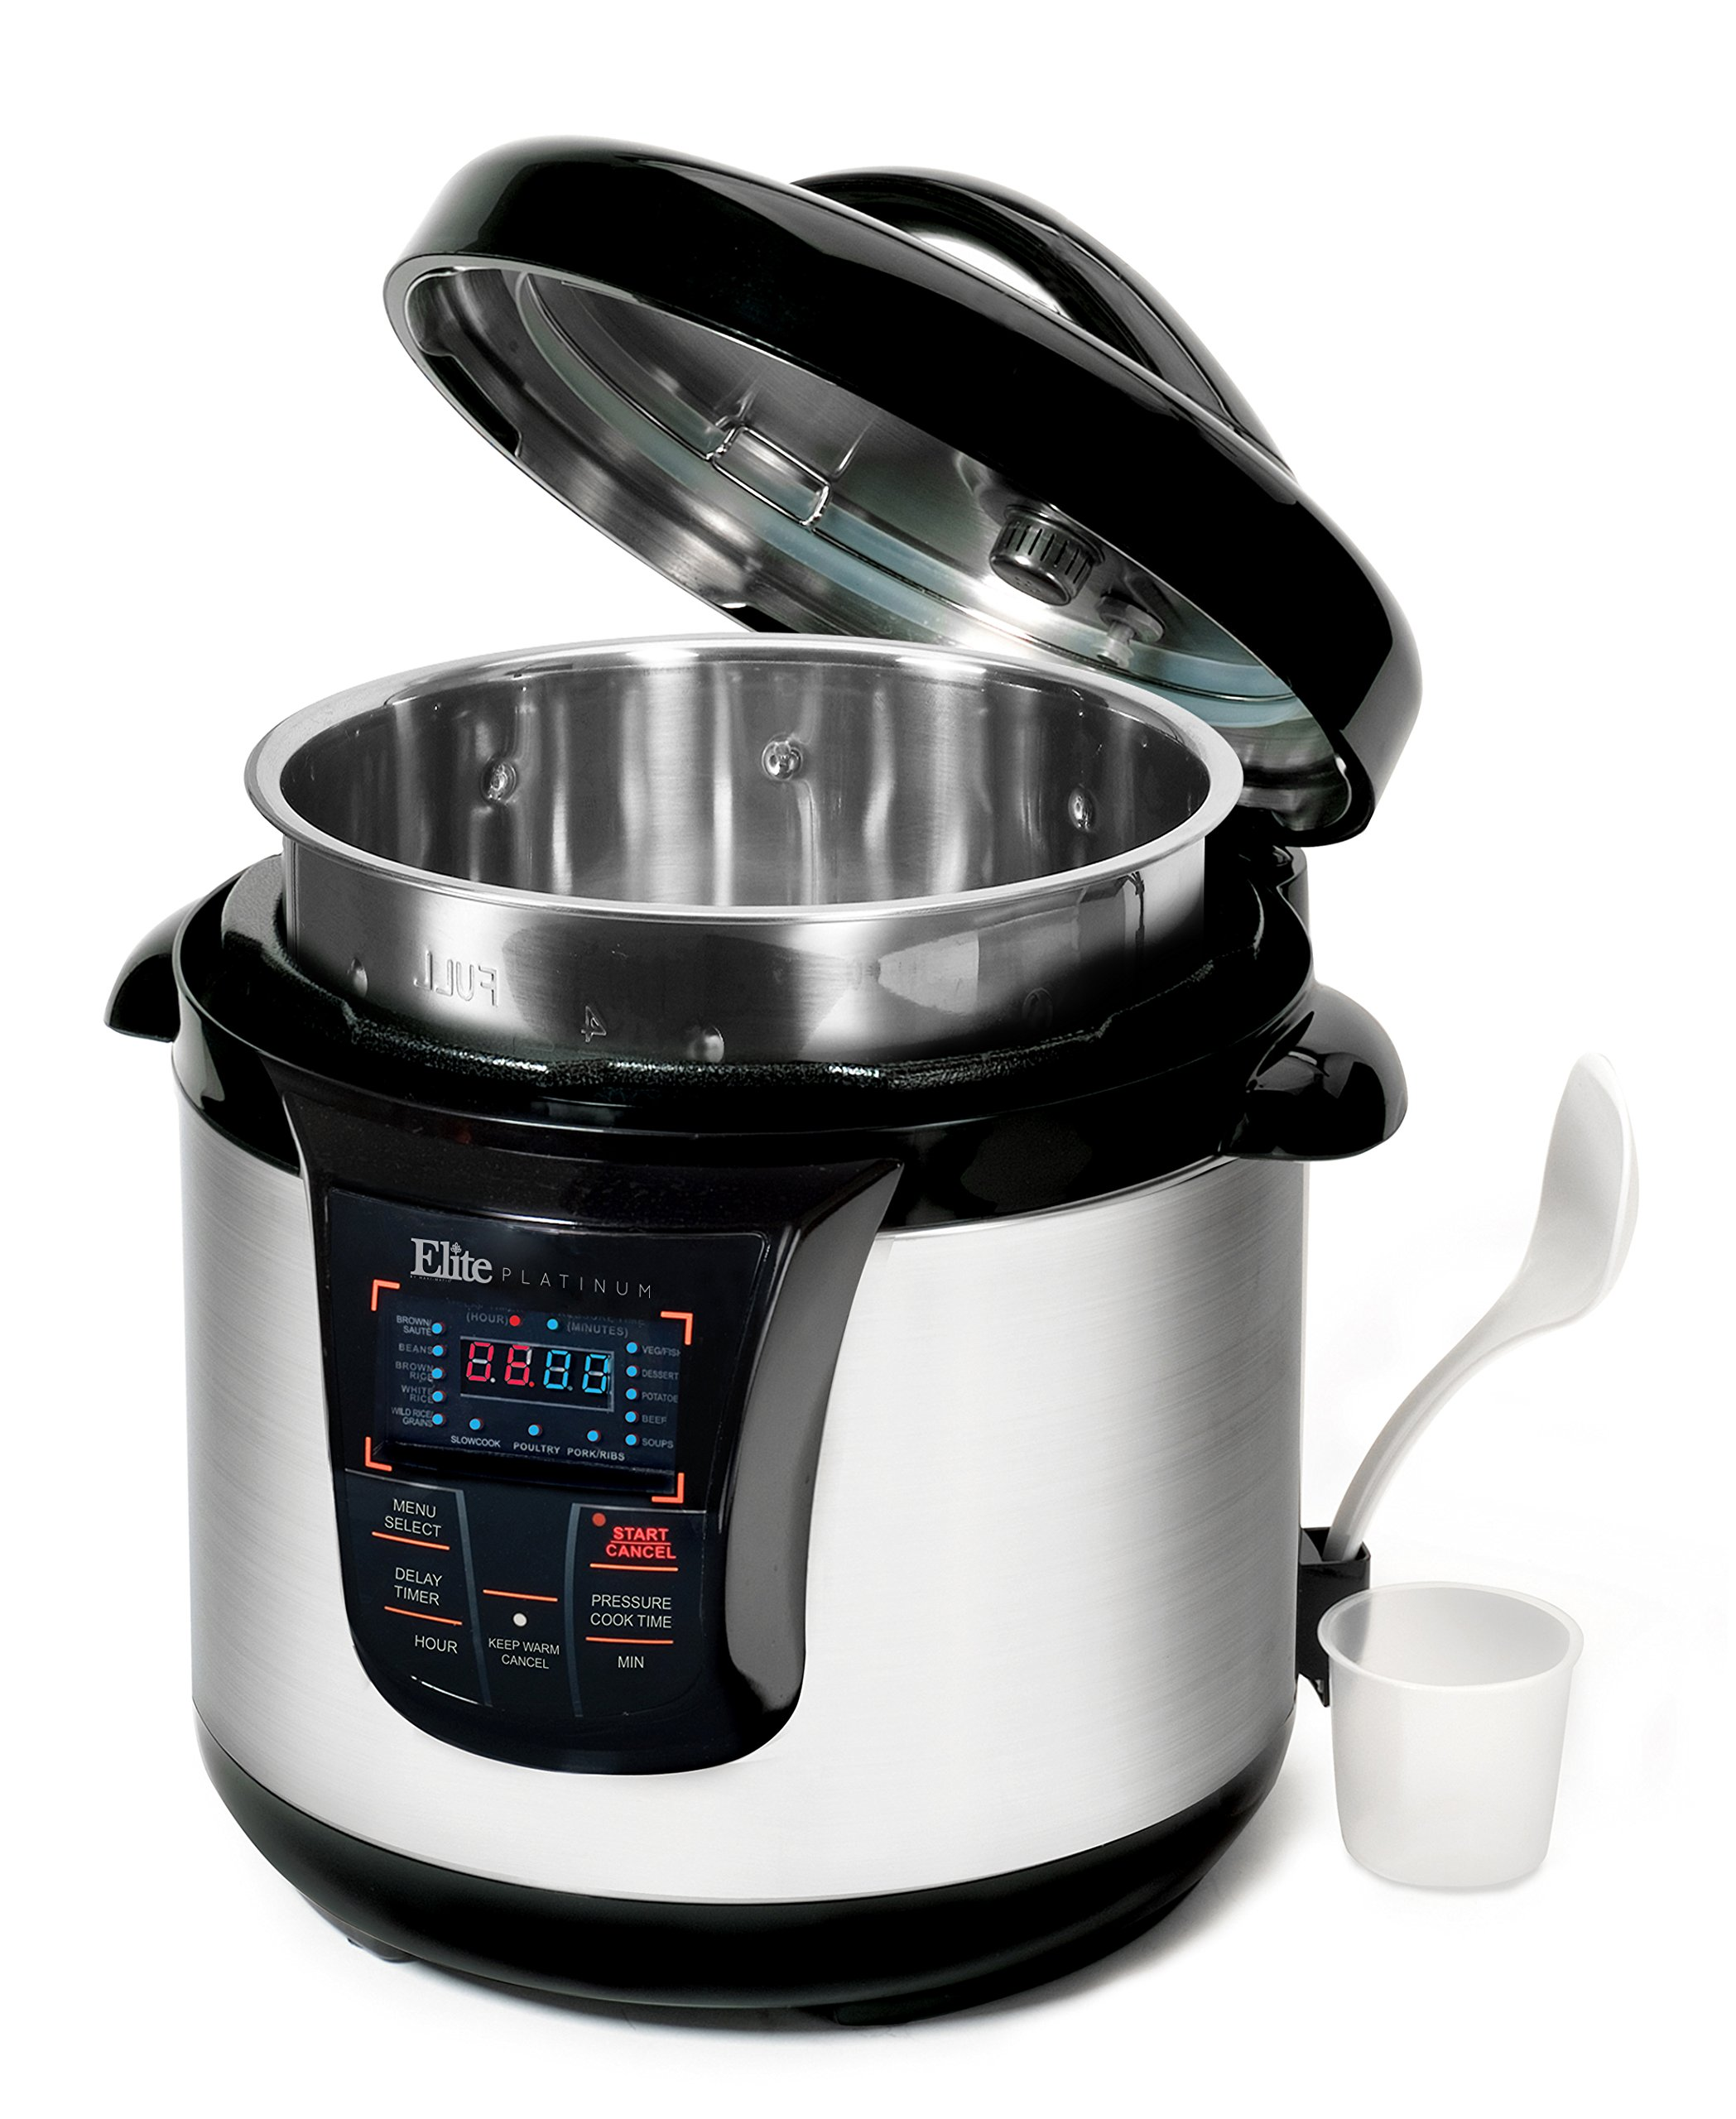 Elite Platinum 8 Quart 14-in-1 Multi-Use Programmable Pressure Cooker, Slow Cooker, Rice Cooker, Sauté, and Warmer with Tri-ply Stainless Steel Inner Pot